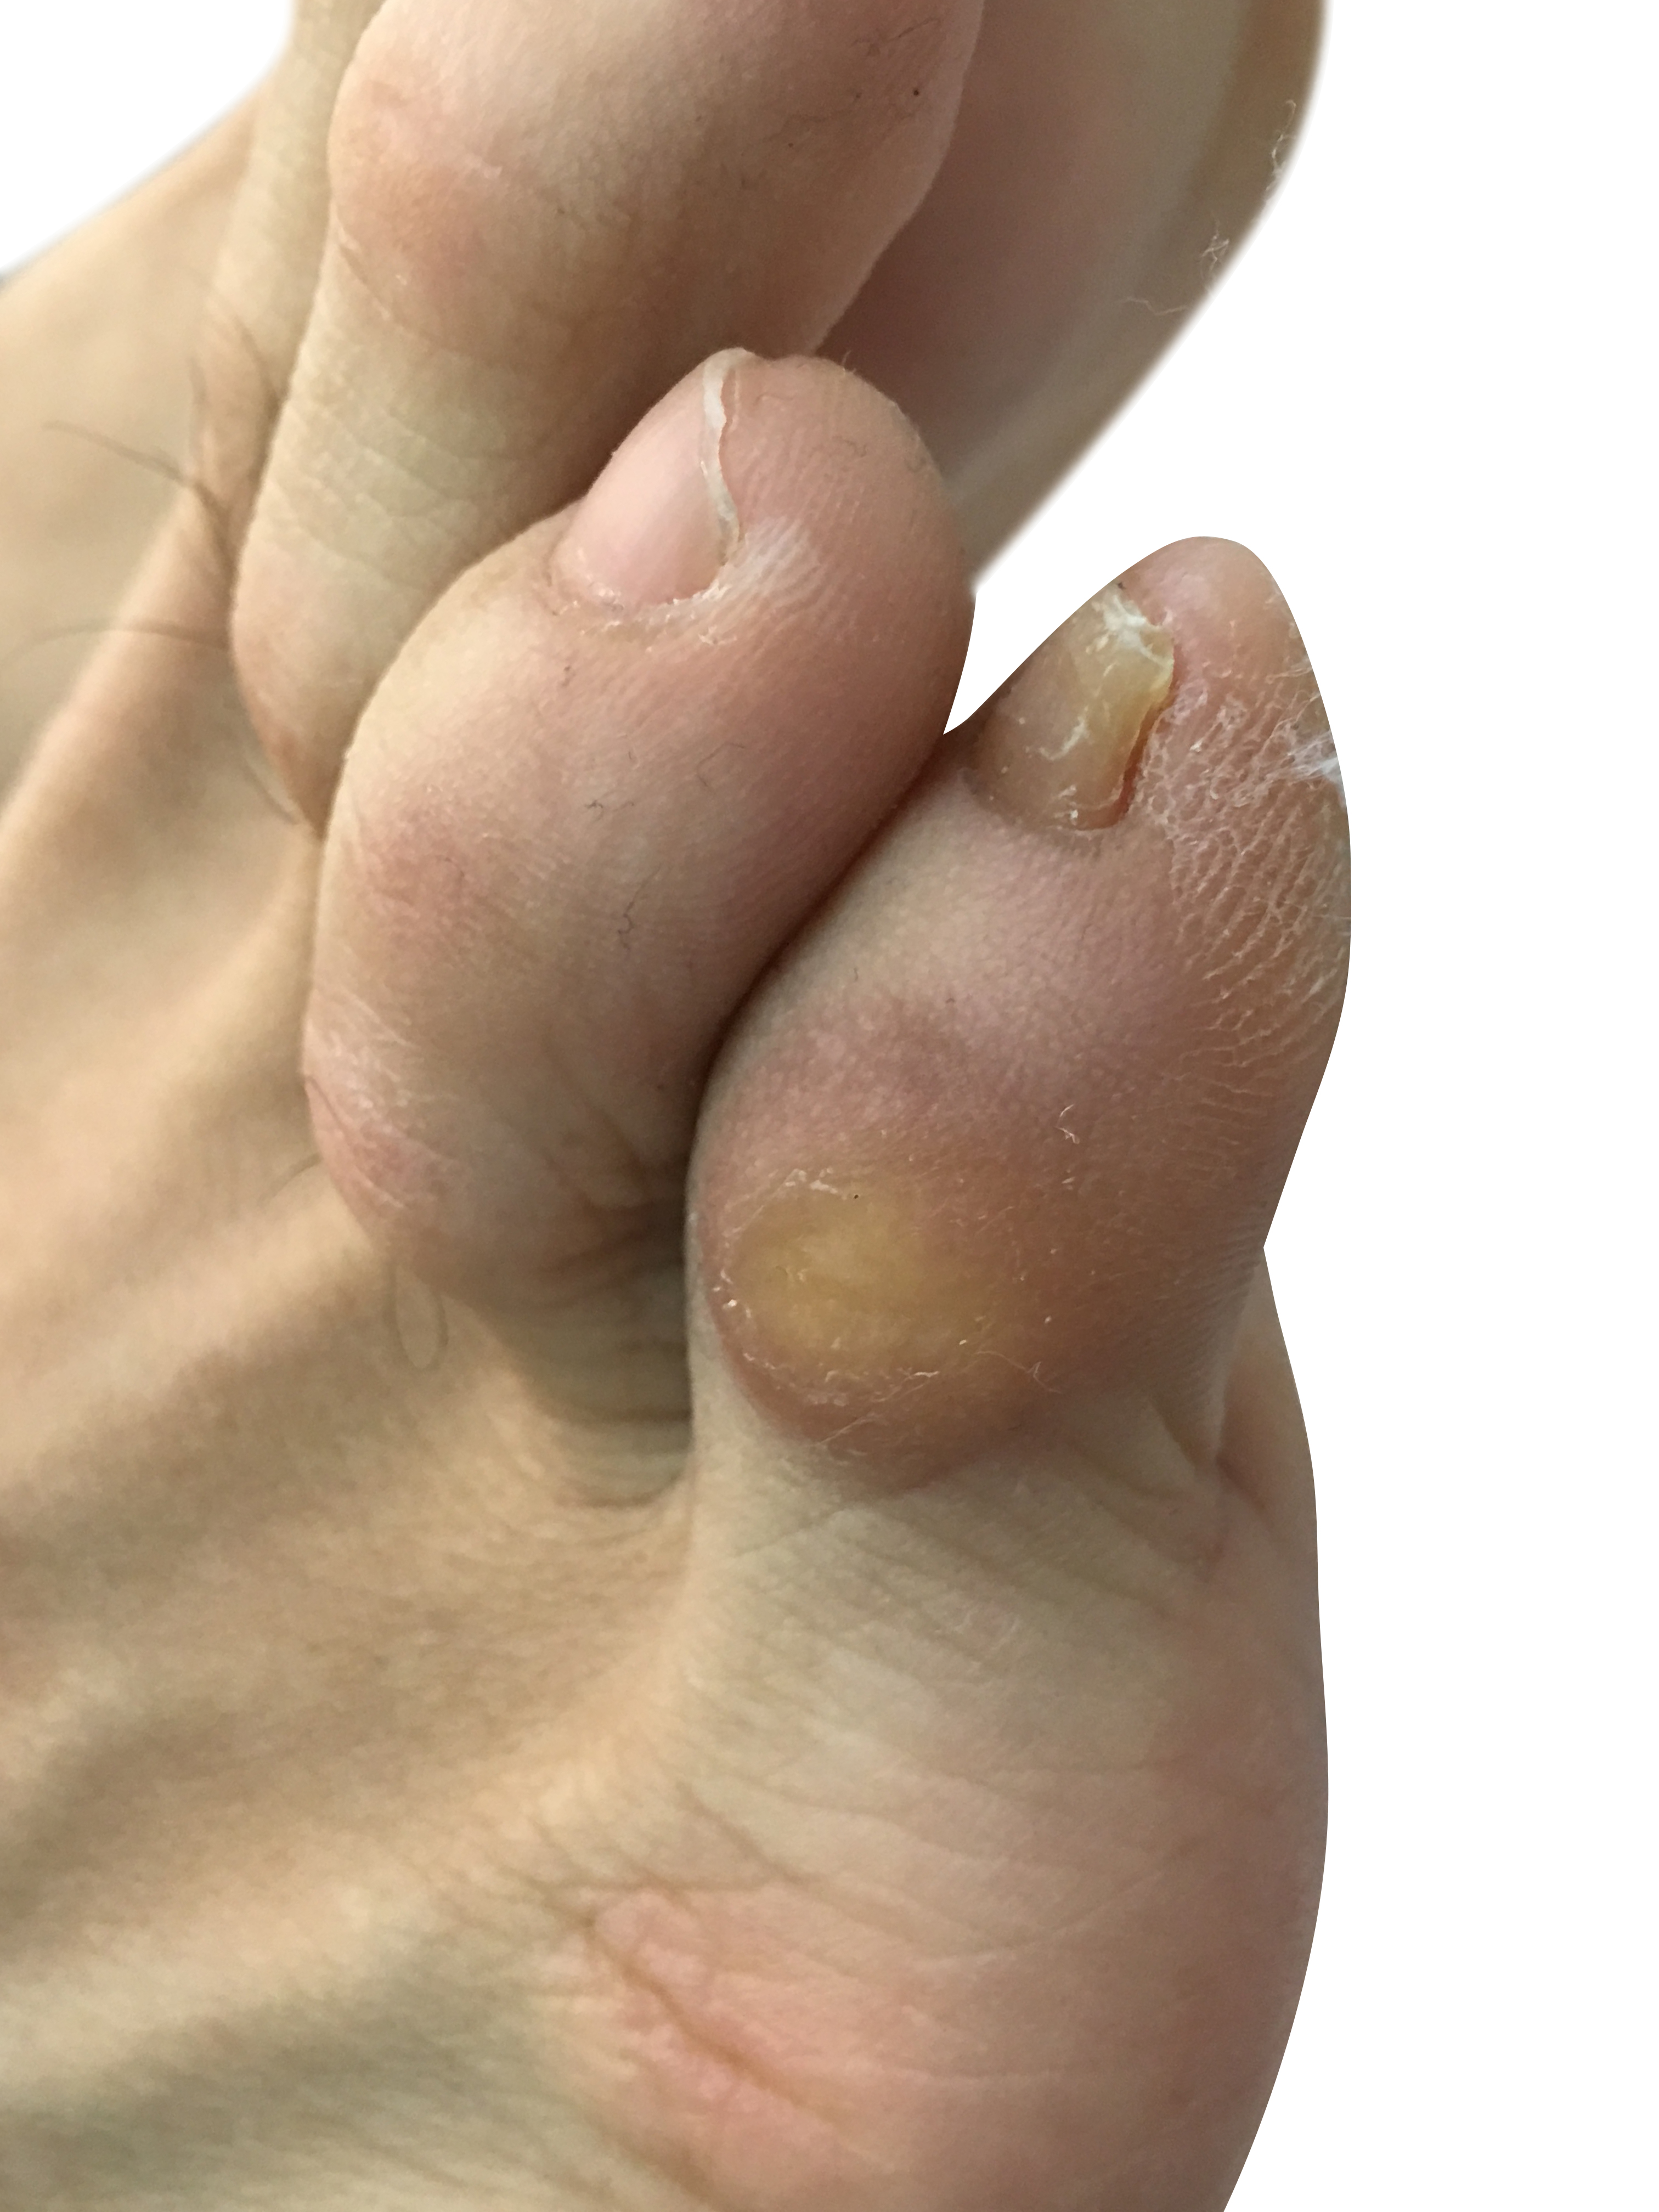 http://dubaipodiatry.com/wp-content/uploads/2018/01/2.jpg